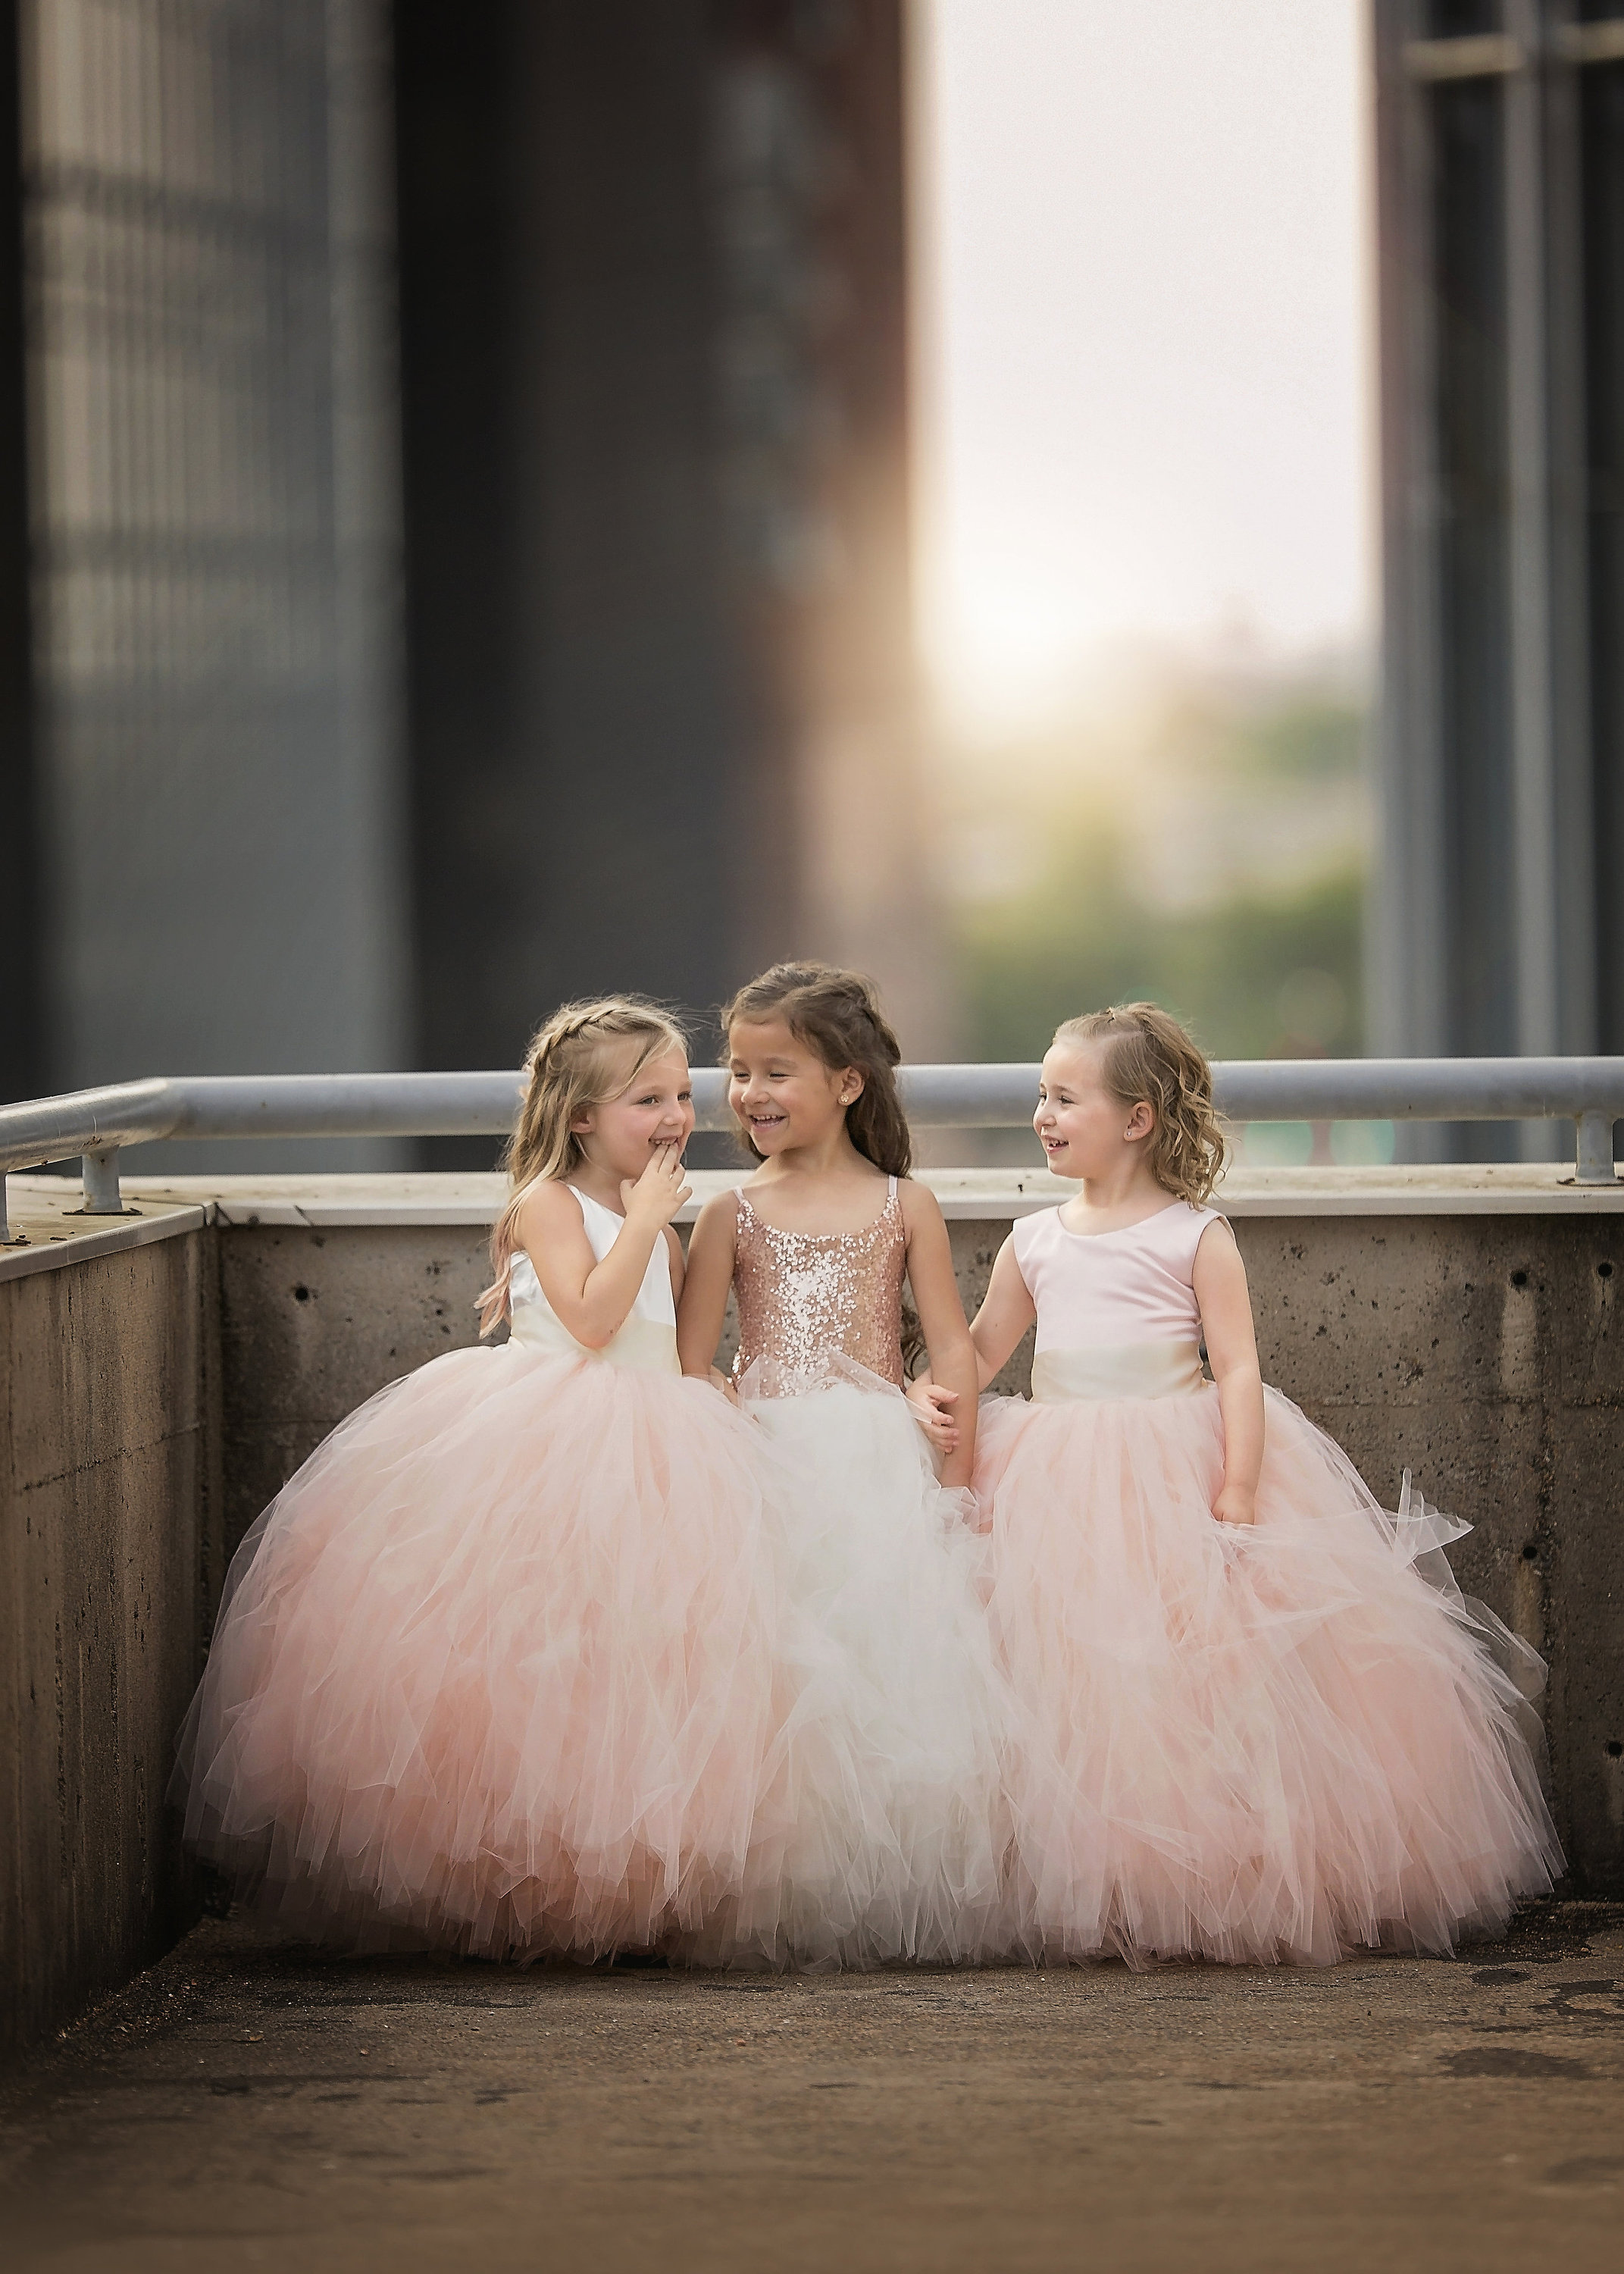 Ivory Satin Bodice and Blush Tulle - Flower Girl Tutu Dress.jpg